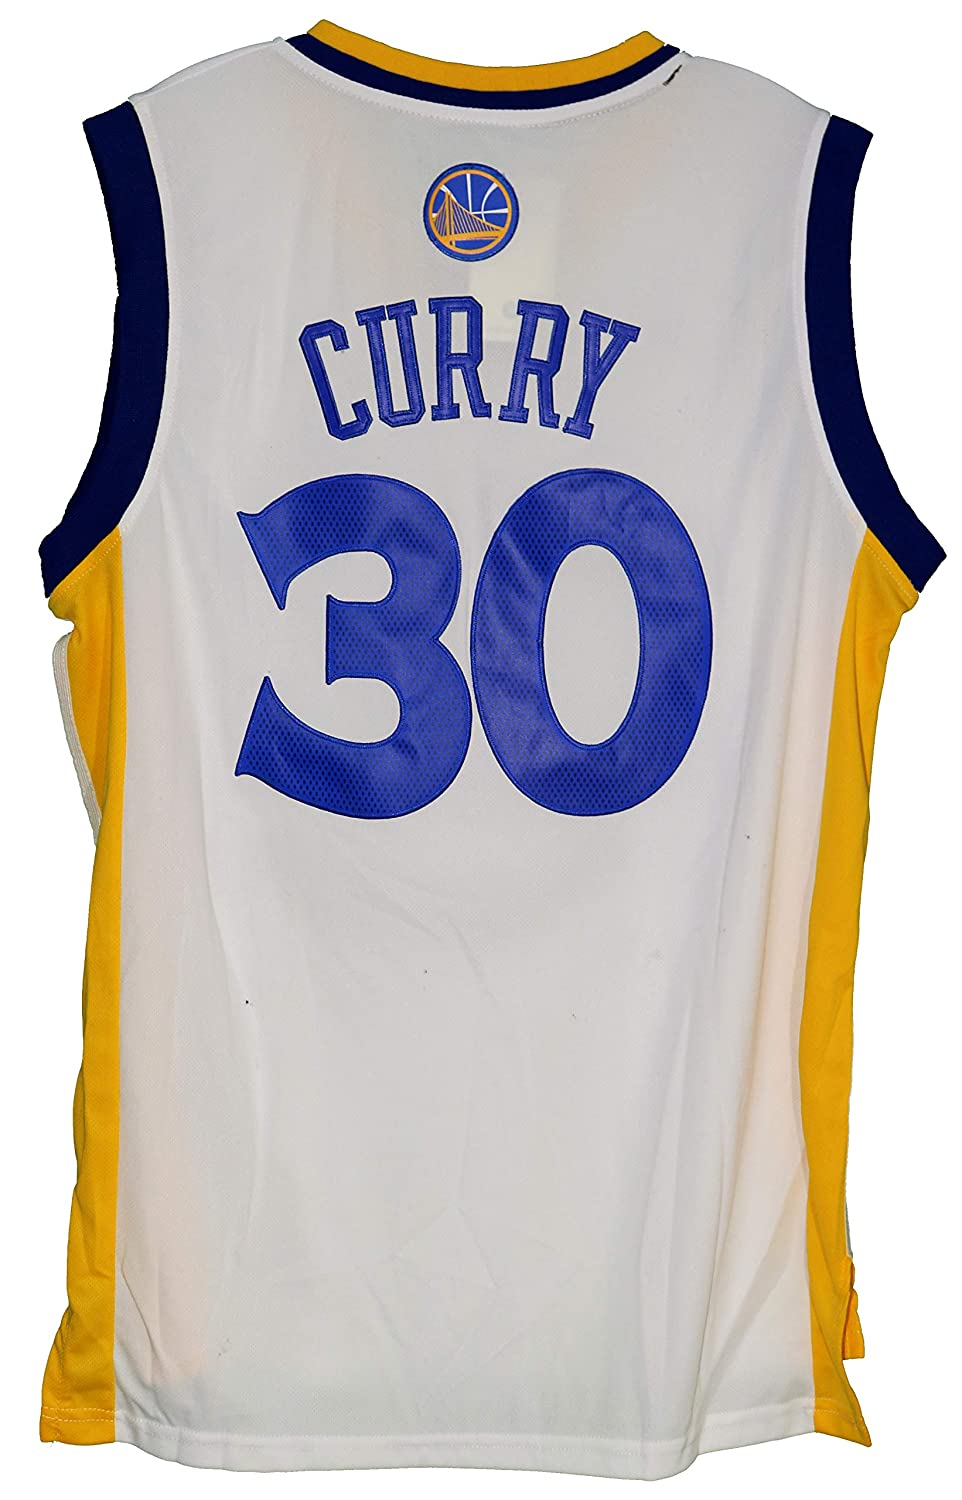 4c444dbccee Golden State Warriors 2015-16 Team Autographed Signed White Jersey Stephen  Curry Klay Thompson Draymond Green at Amazon's Sports Collectibles Store